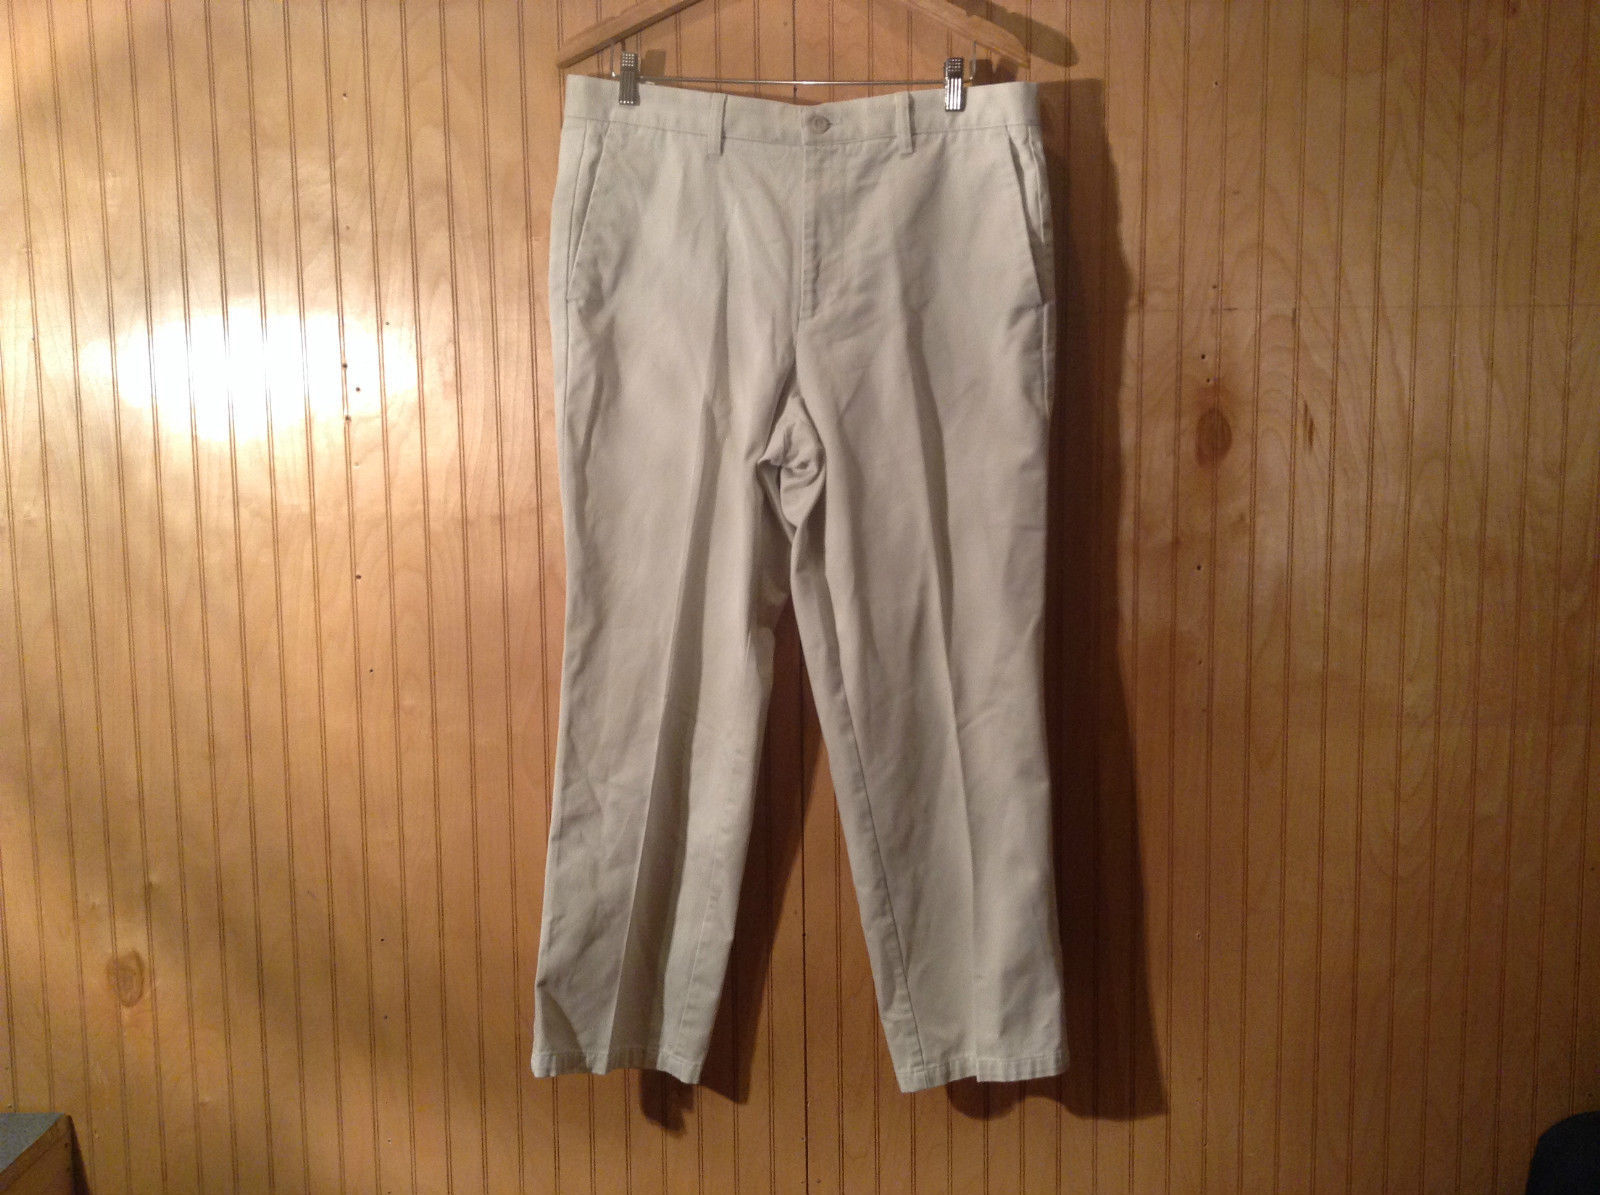 Khaki Casual Pants by Dockers Classic Pants Size W36 by L29 Individual Fit